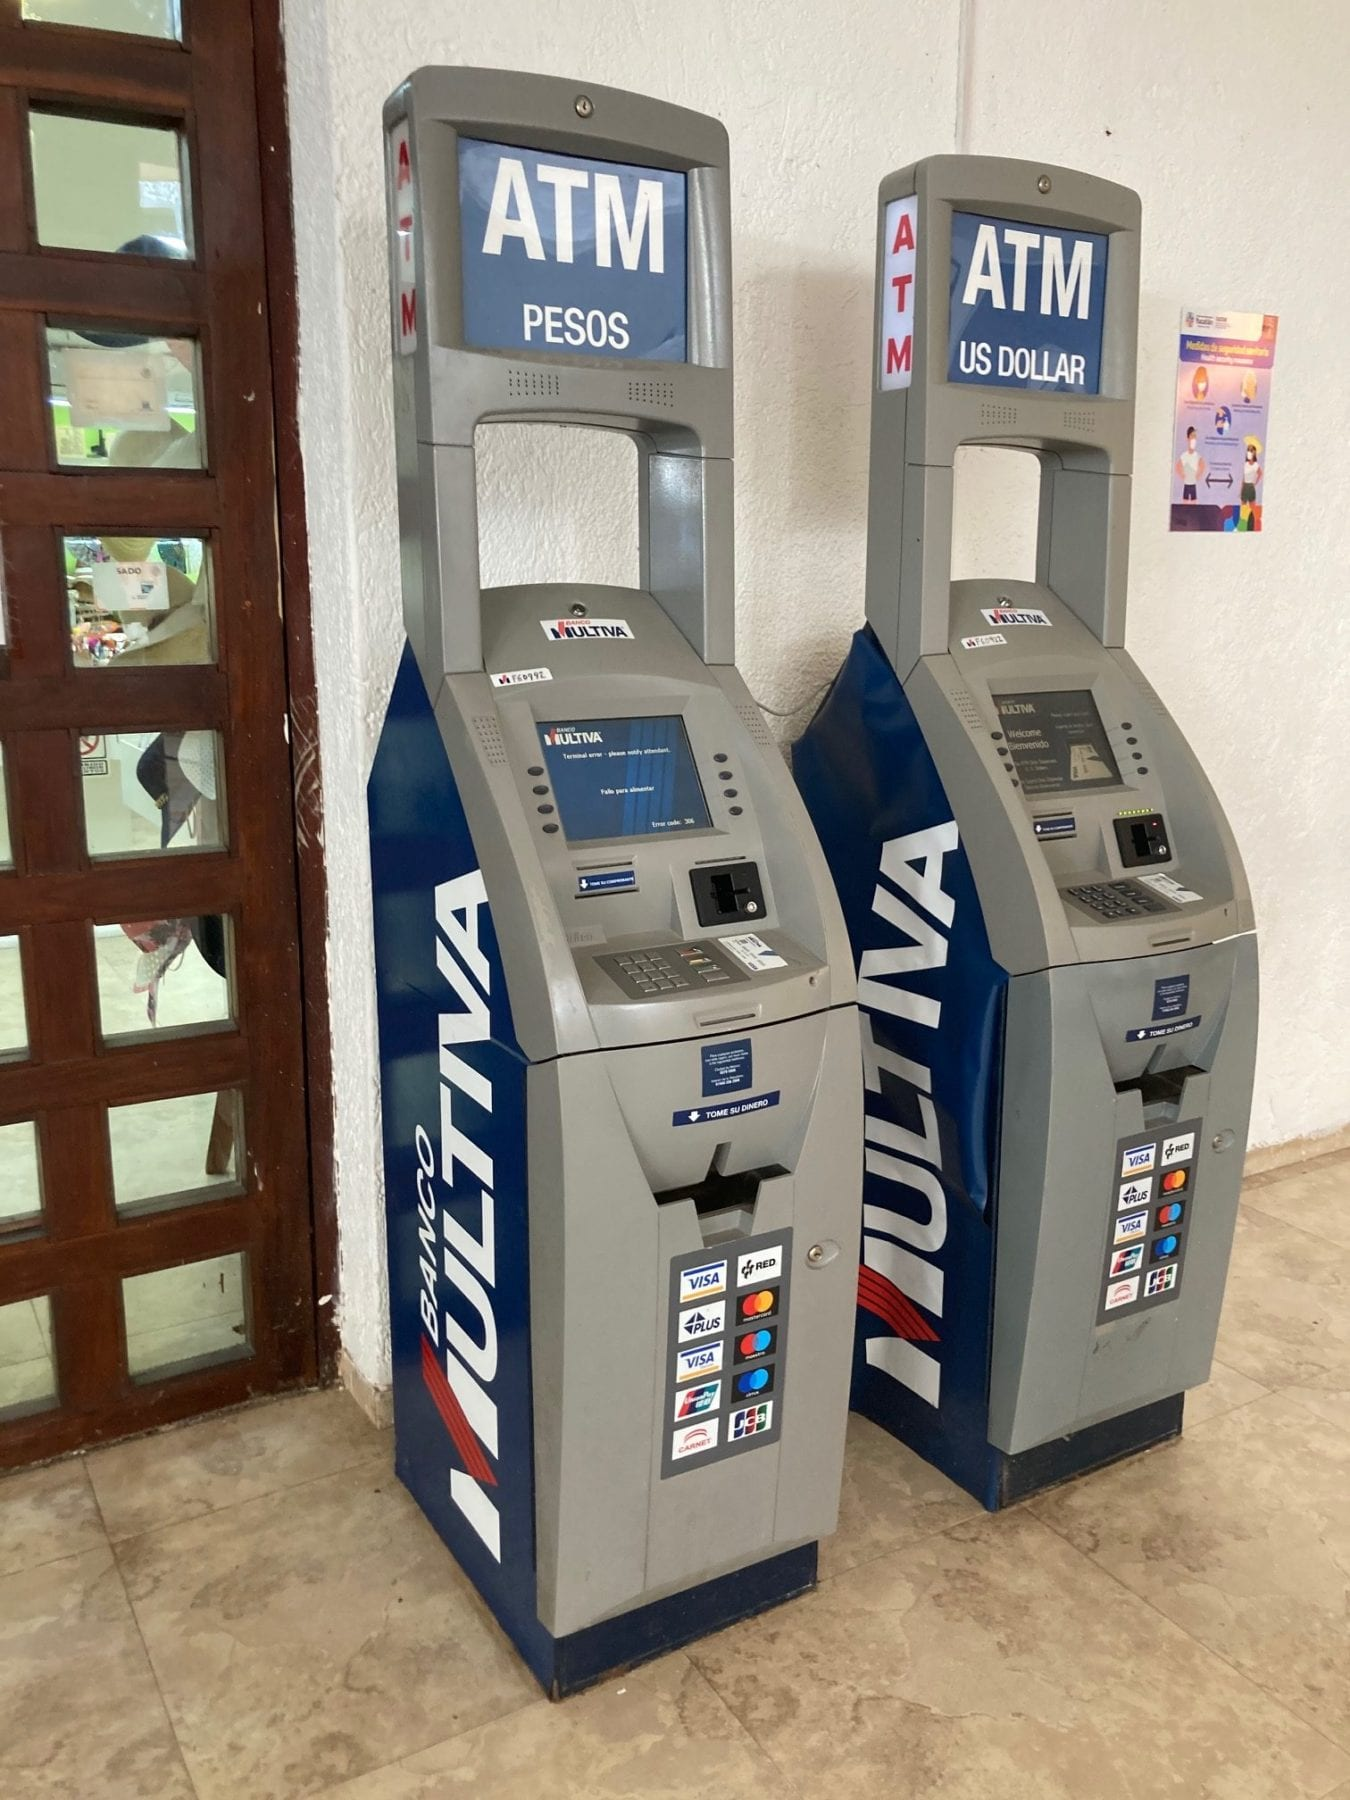 Tips for Cancun - ATM